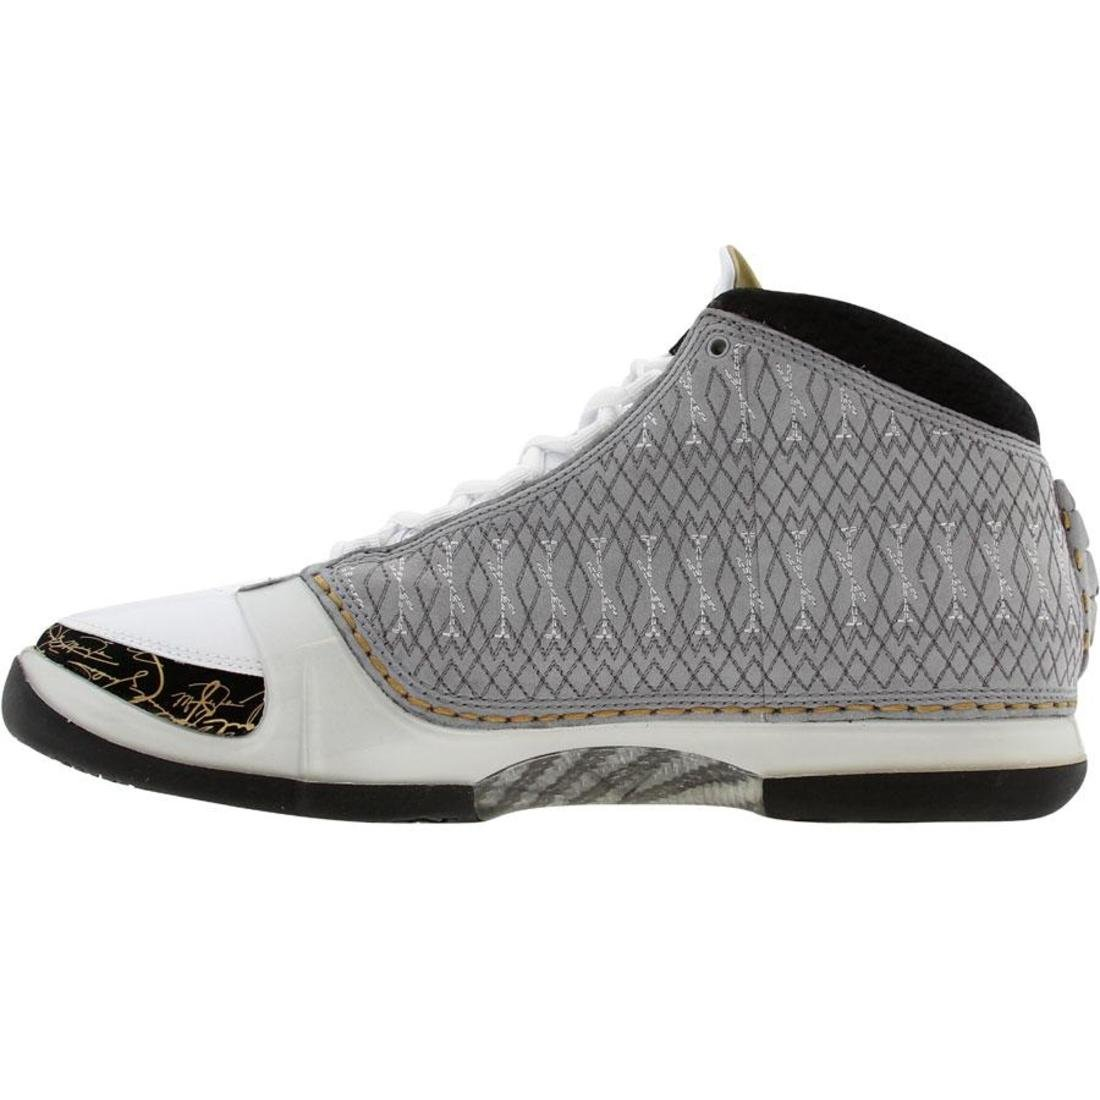 new style ae496 461a2 Amazon.com   Nike Air Jordan Men XX3 23 (white   stealth   black   metallic  gold) Size 9 US   Shoes